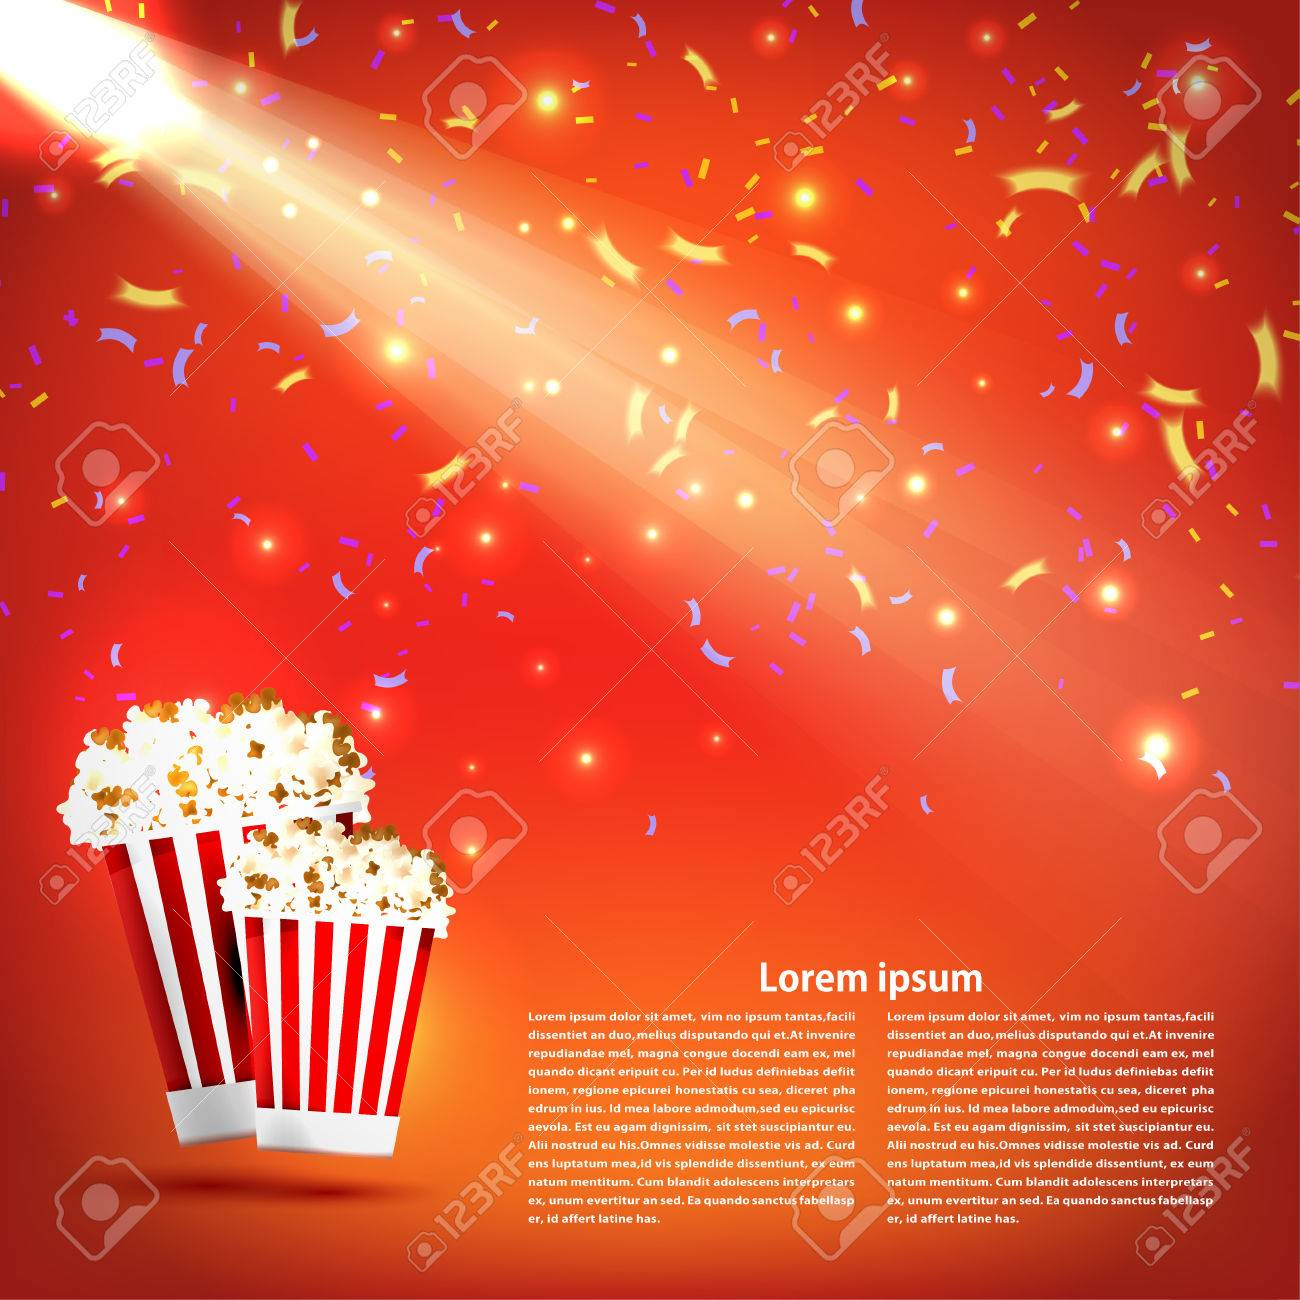 Banner The Cinema With Popcorn And A Spotlight On Red Background Royalty Free Cliparts Vectors And Stock Illustration Image 40227598